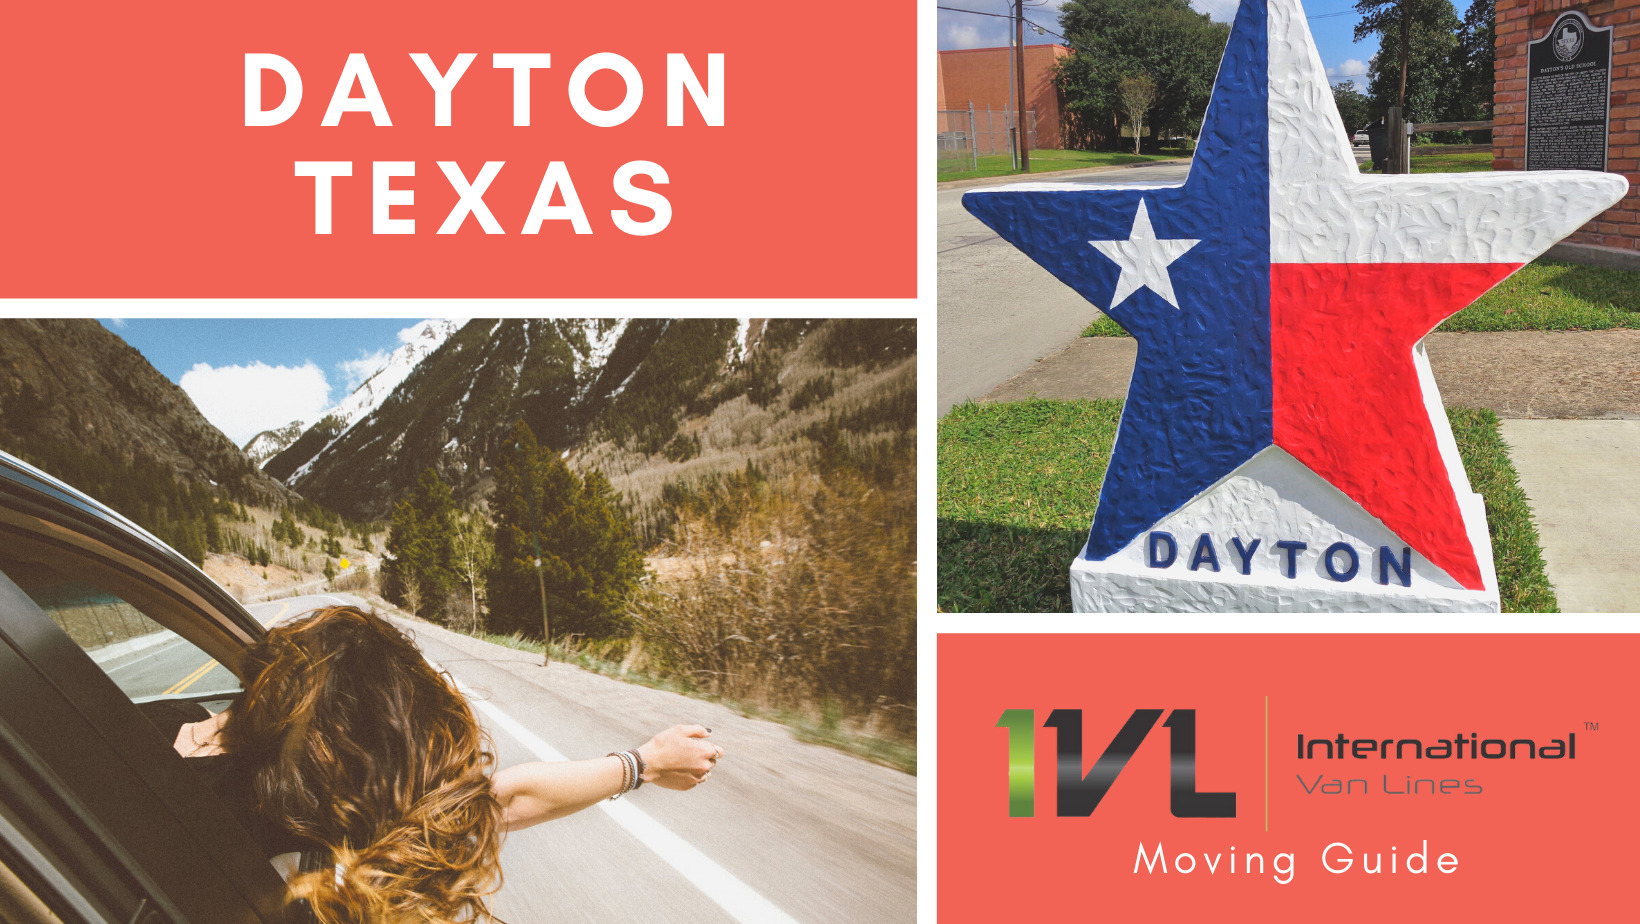 Your Guide to Moving in Dayton Texas